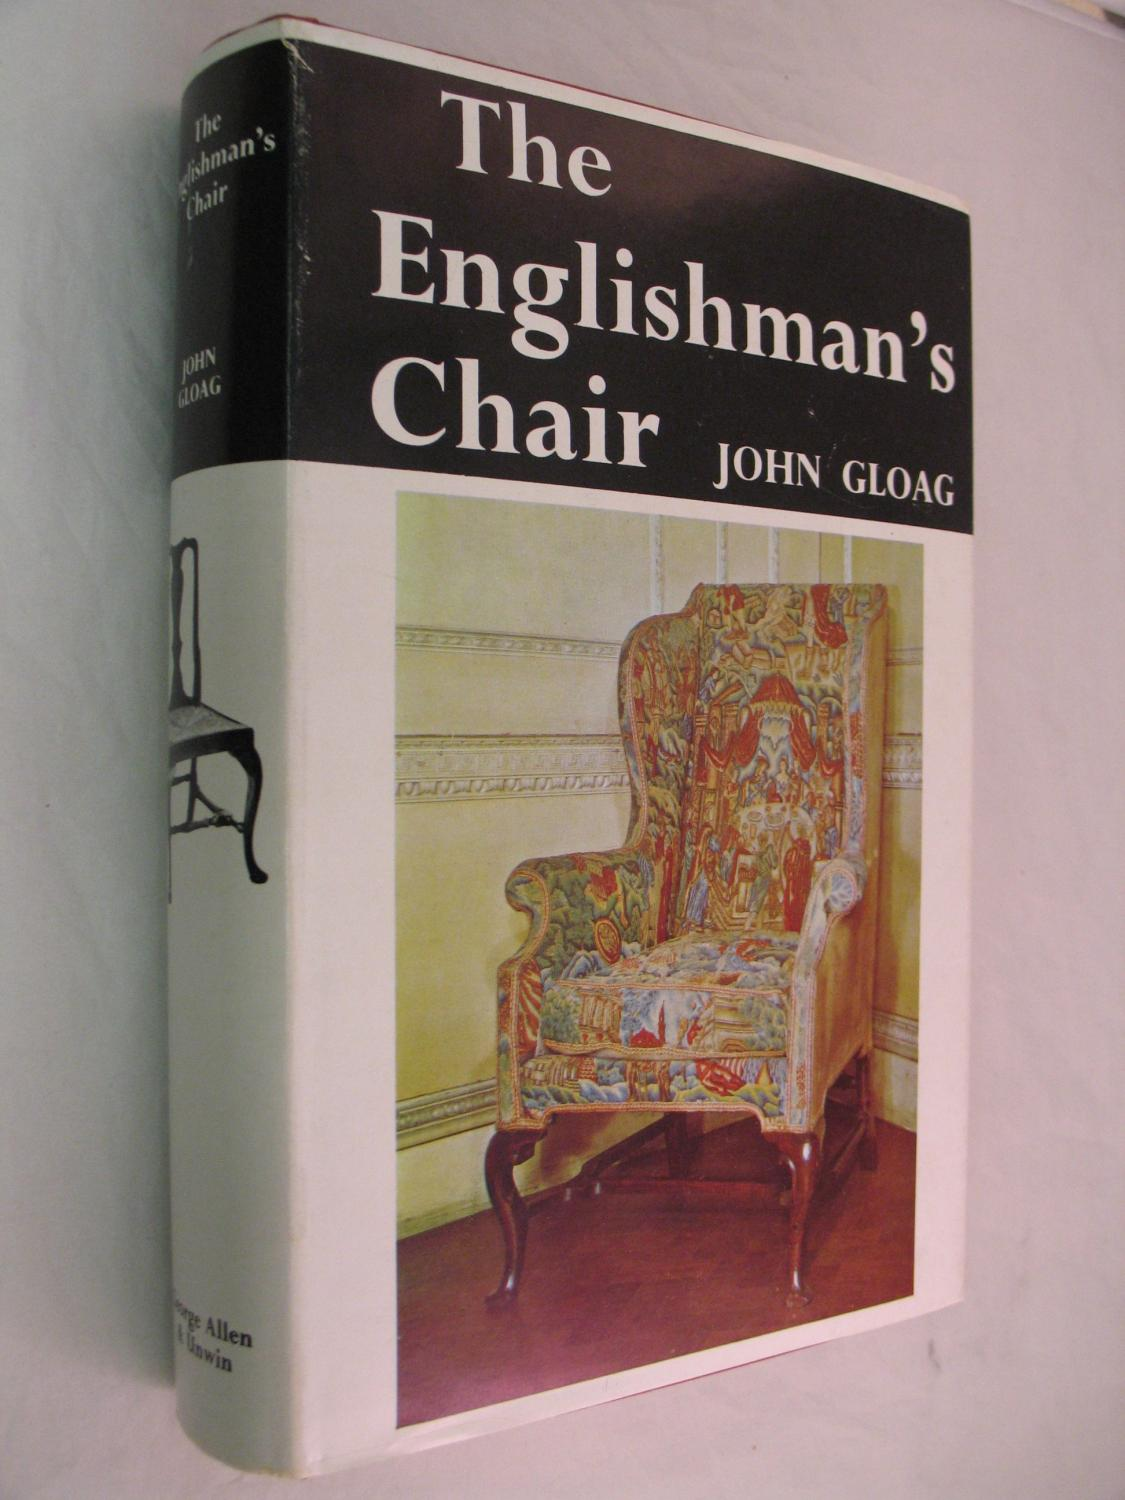 Attirant The Englishmanu0027s Chair Origins, Design, And Social History Of Seat Furniture  In England: